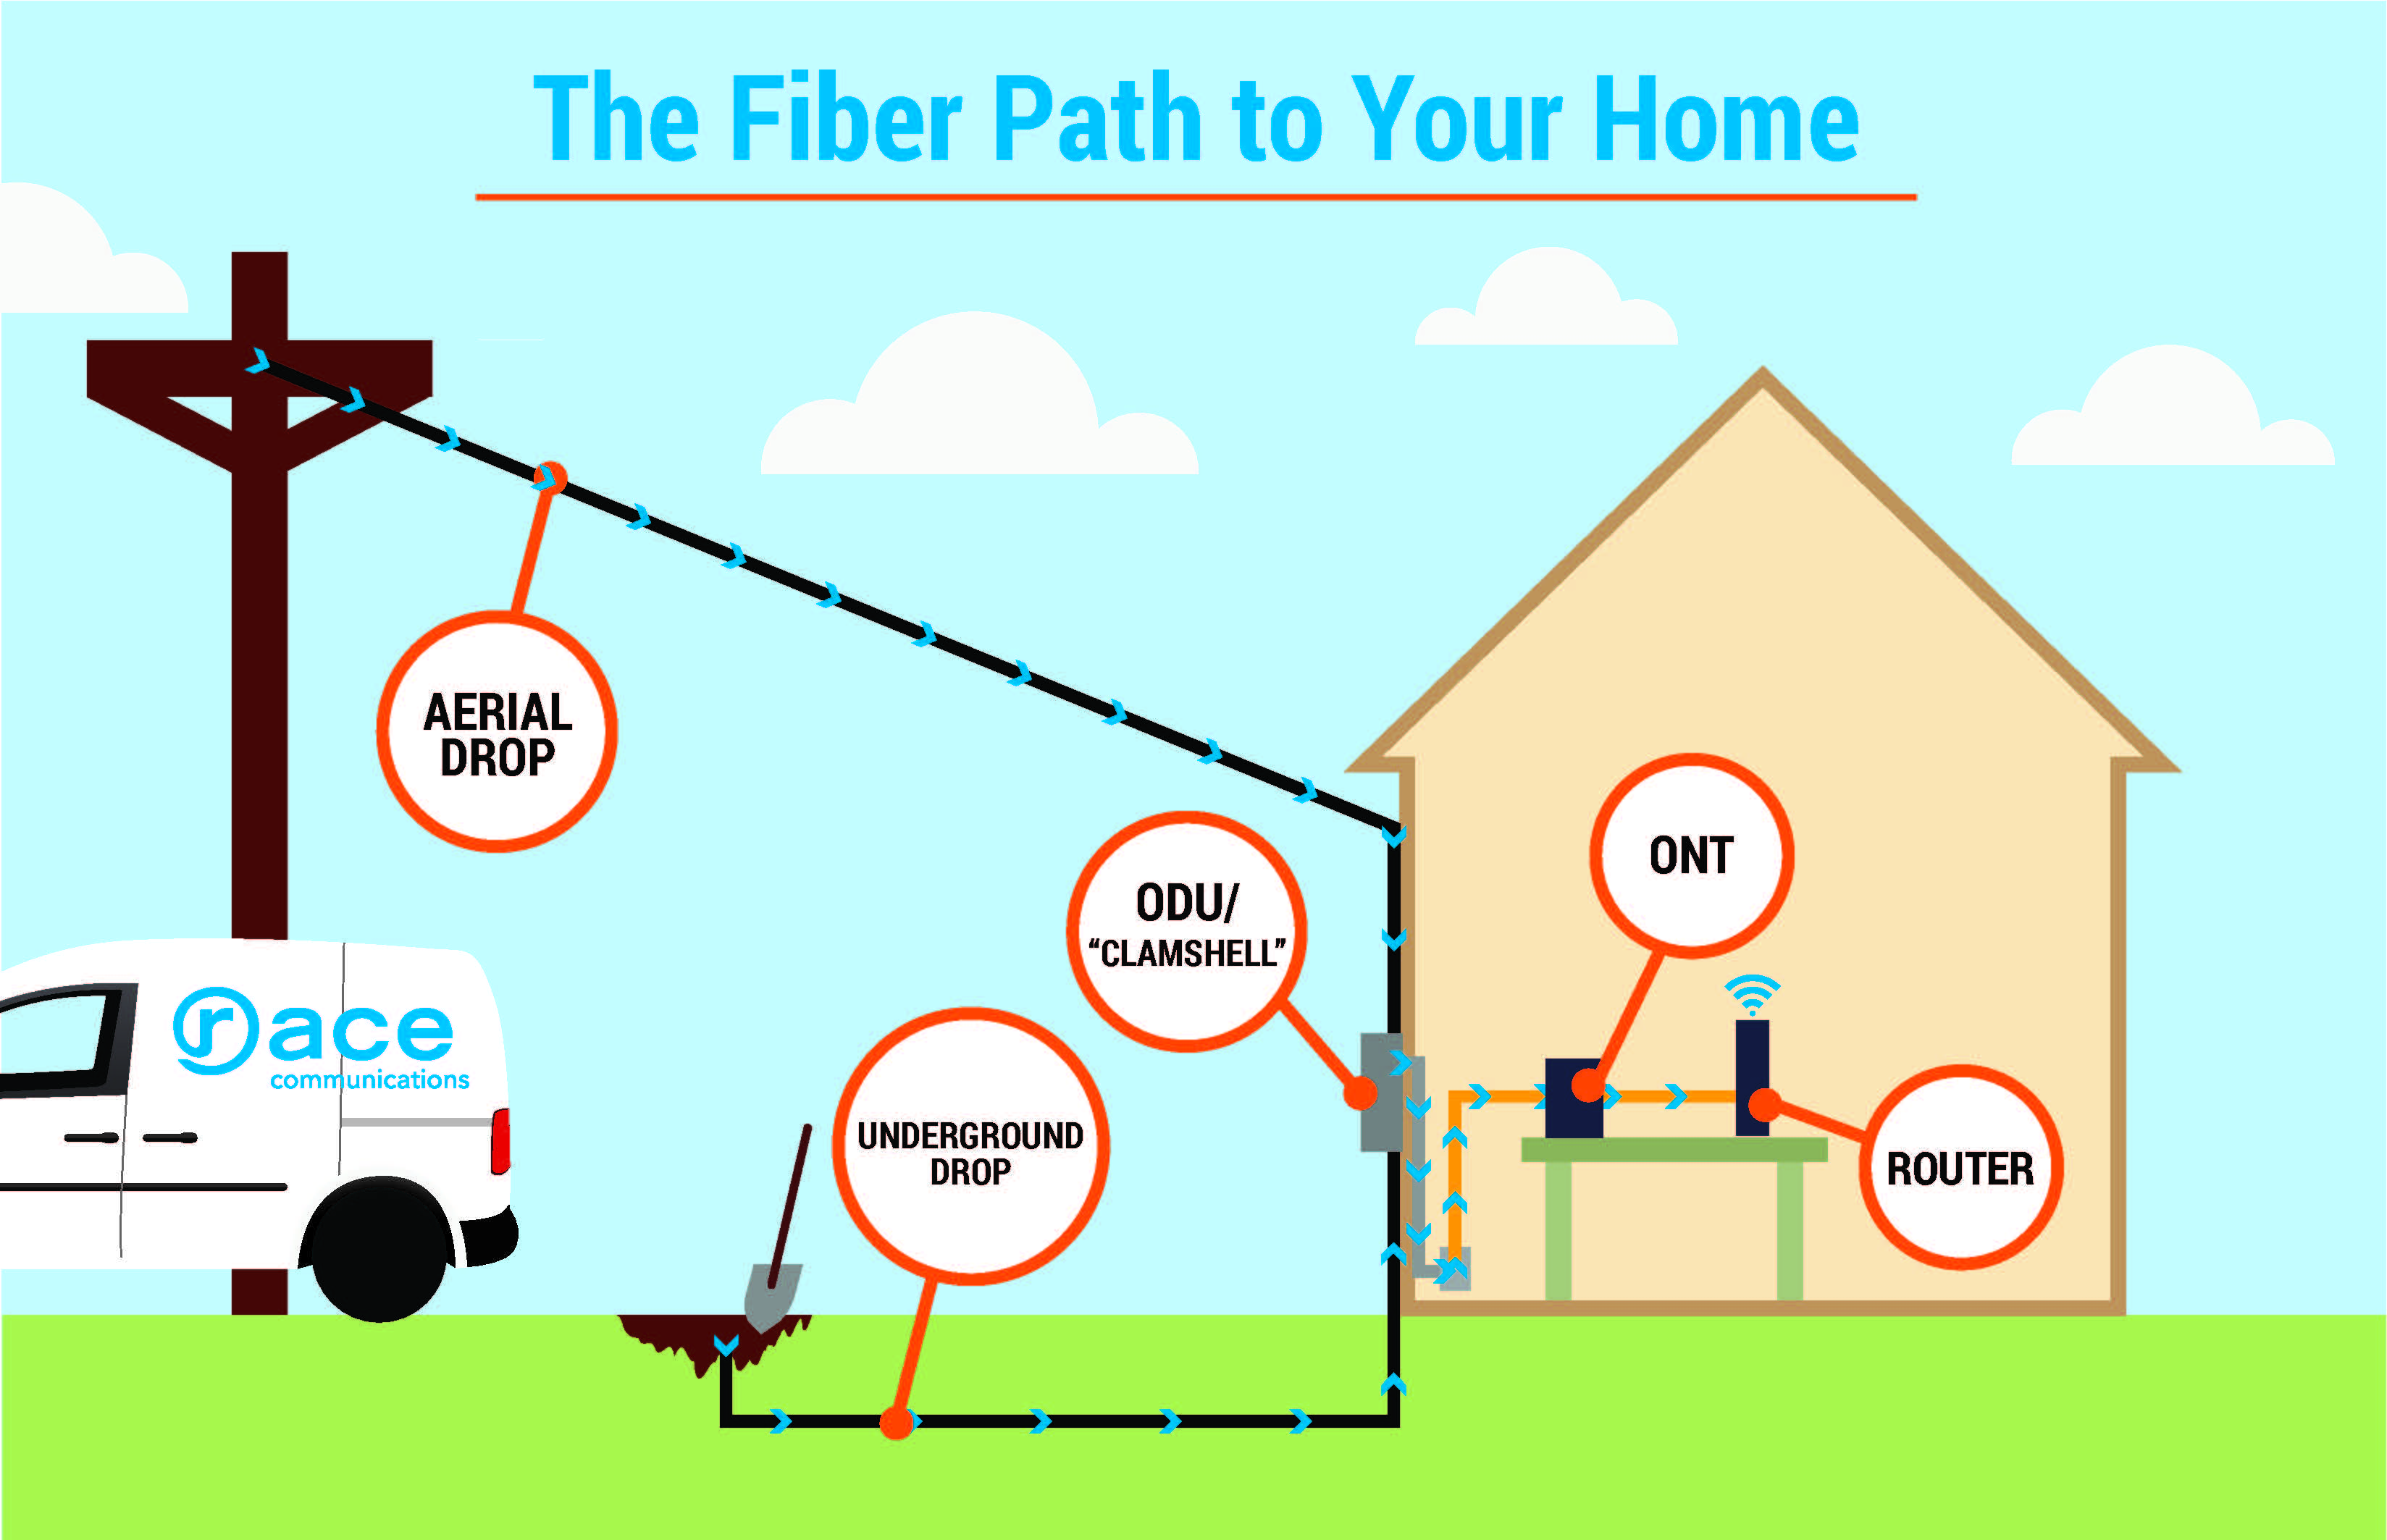 race_the fiber path to your home_2?w=809 the fiber path to your home race communications blog